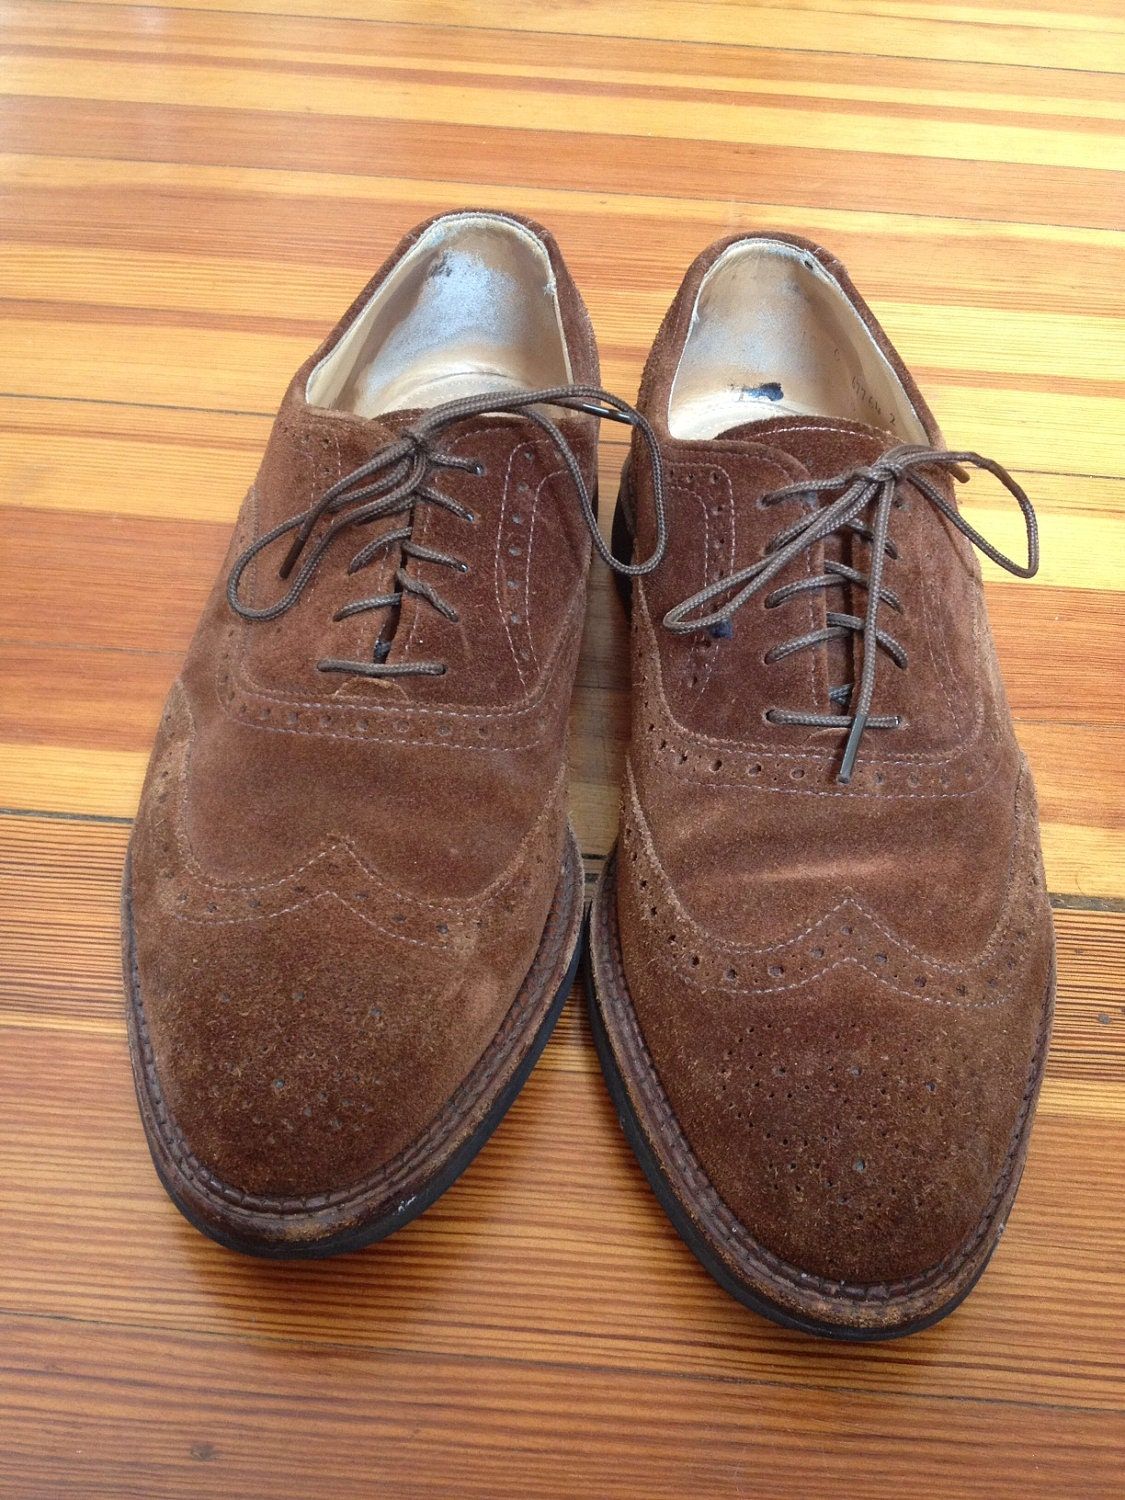 6f06fefad1c60 man-dress-suede-shoes.html in hitizexyt.github.com | source code search  engine